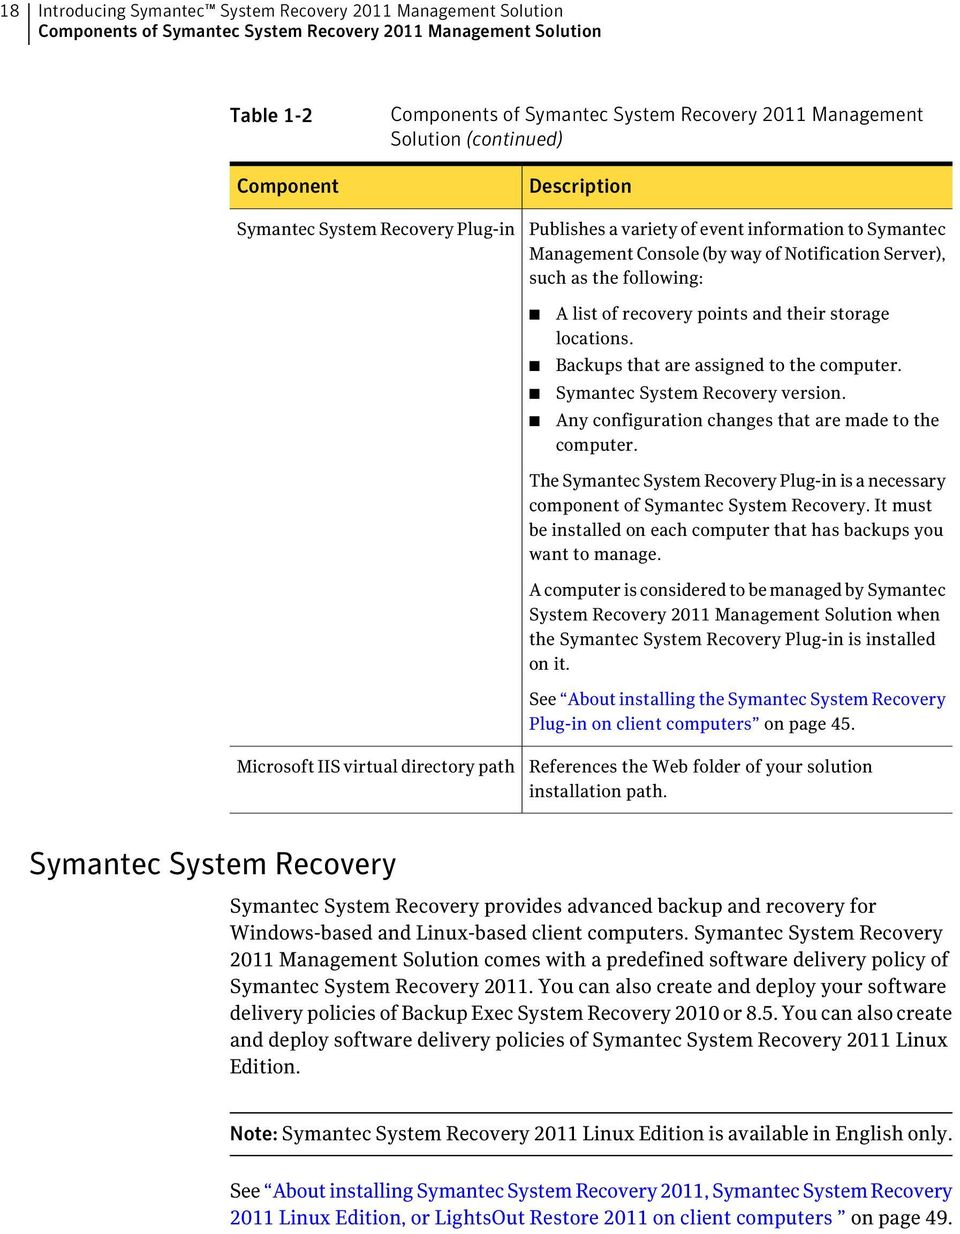 following: A list of recovery points and their storage locations. Backups that are assigned to the computer. Symantec System Recovery version. Any configuration changes that are made to the computer.